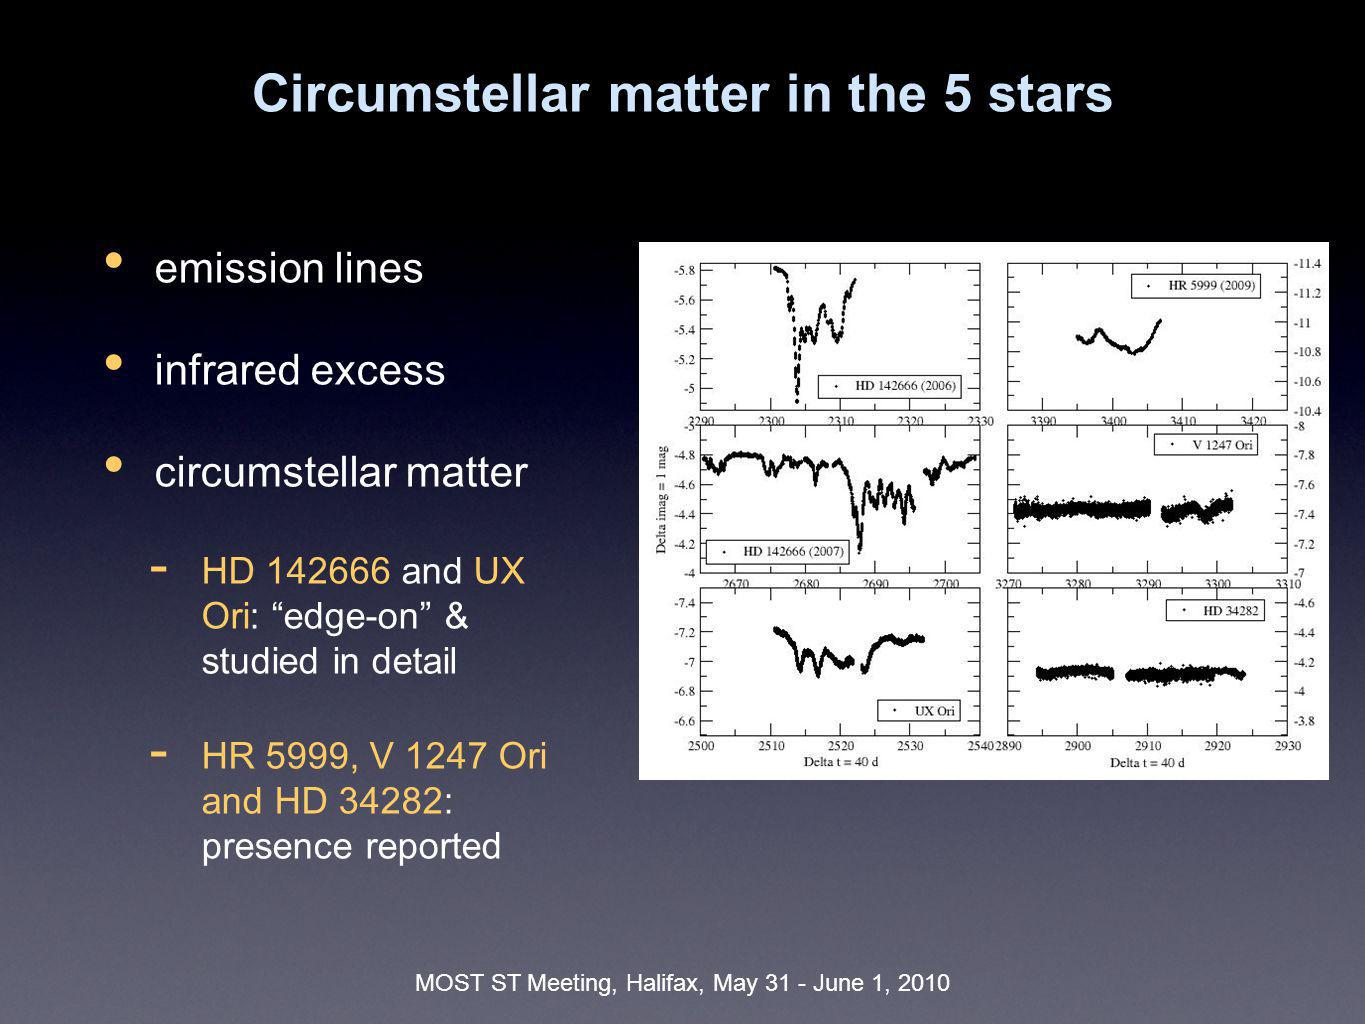 MOST ST Meeting, Halifax, May 31 - June 1, 2010 Circumstellar matter in the 5 stars emission lines infrared excess circumstellar matter  HD 142666 and UX Ori: edge-on & studied in detail  HR 5999, V 1247 Ori and HD 34282: presence reported